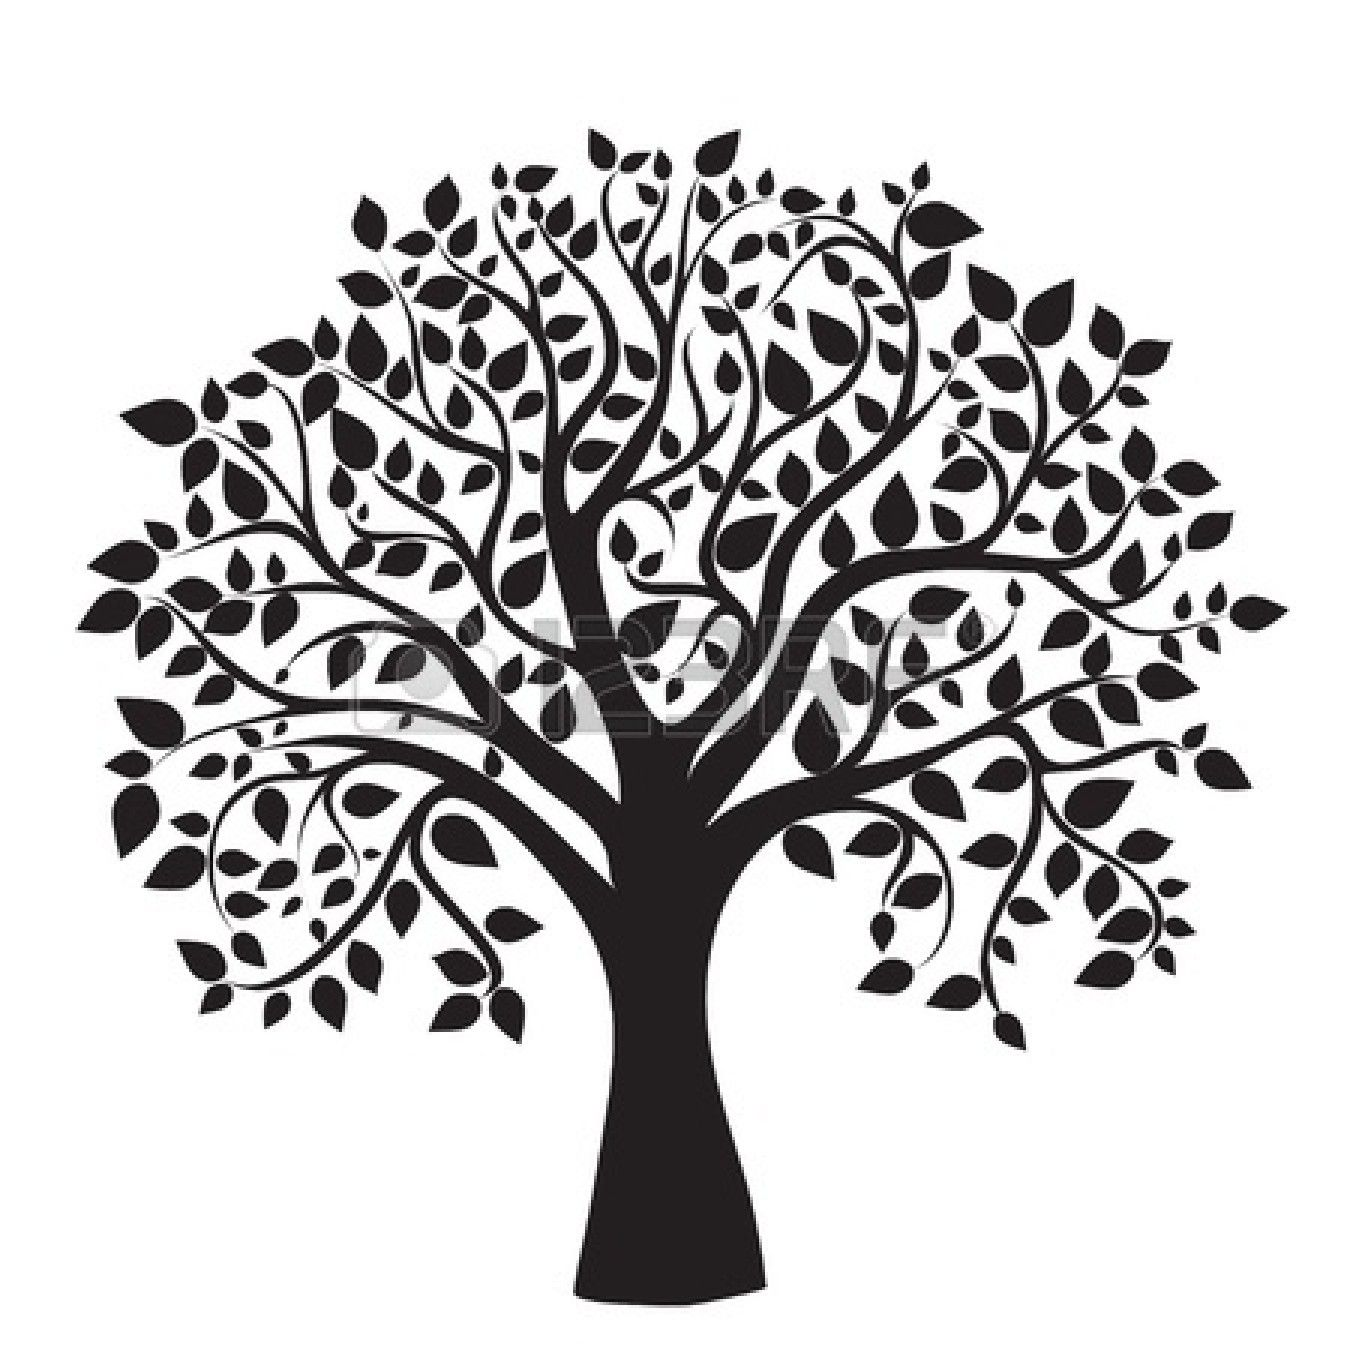 Tree Of Life Images, Stock Pictures, Royalty Free Tree Of Life.